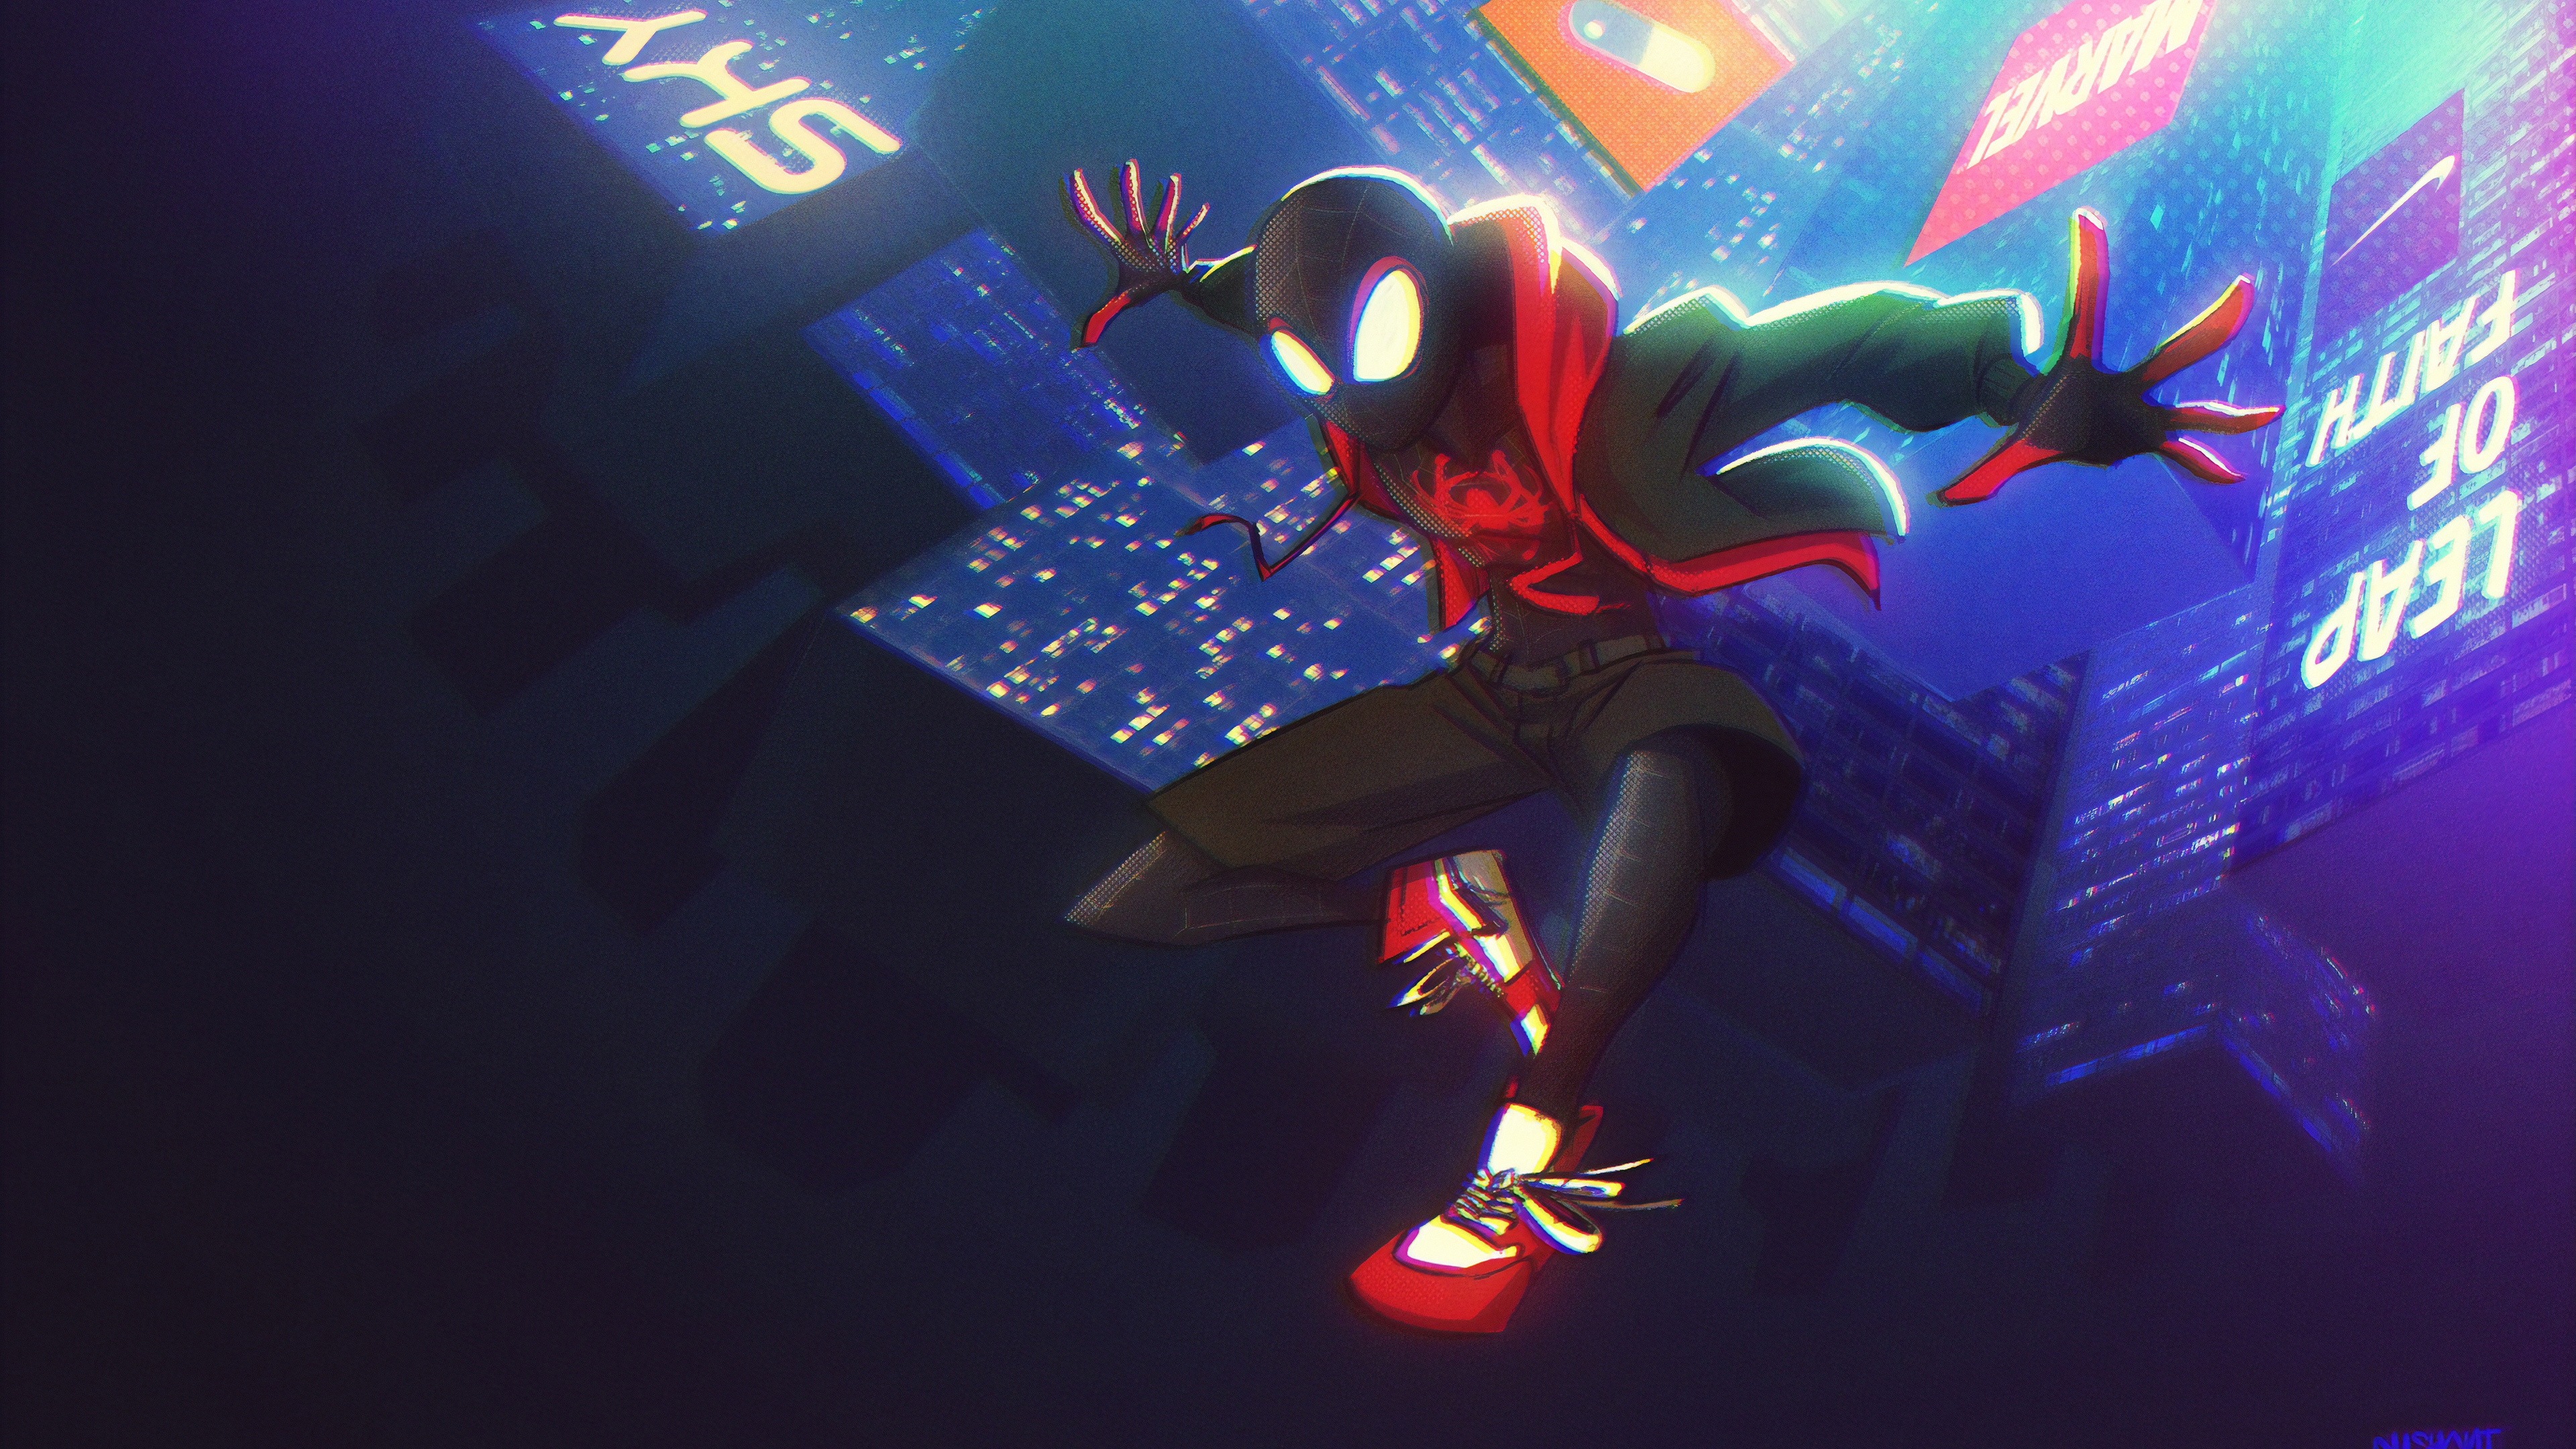 miles on the way 1572368508 - Miles On The Way - superheroes wallpapers, spiderman wallpapers, hd-wallpapers, digital art wallpapers, artwork wallpapers, artstation wallpapers, art wallpapers, 4k-wallpapers